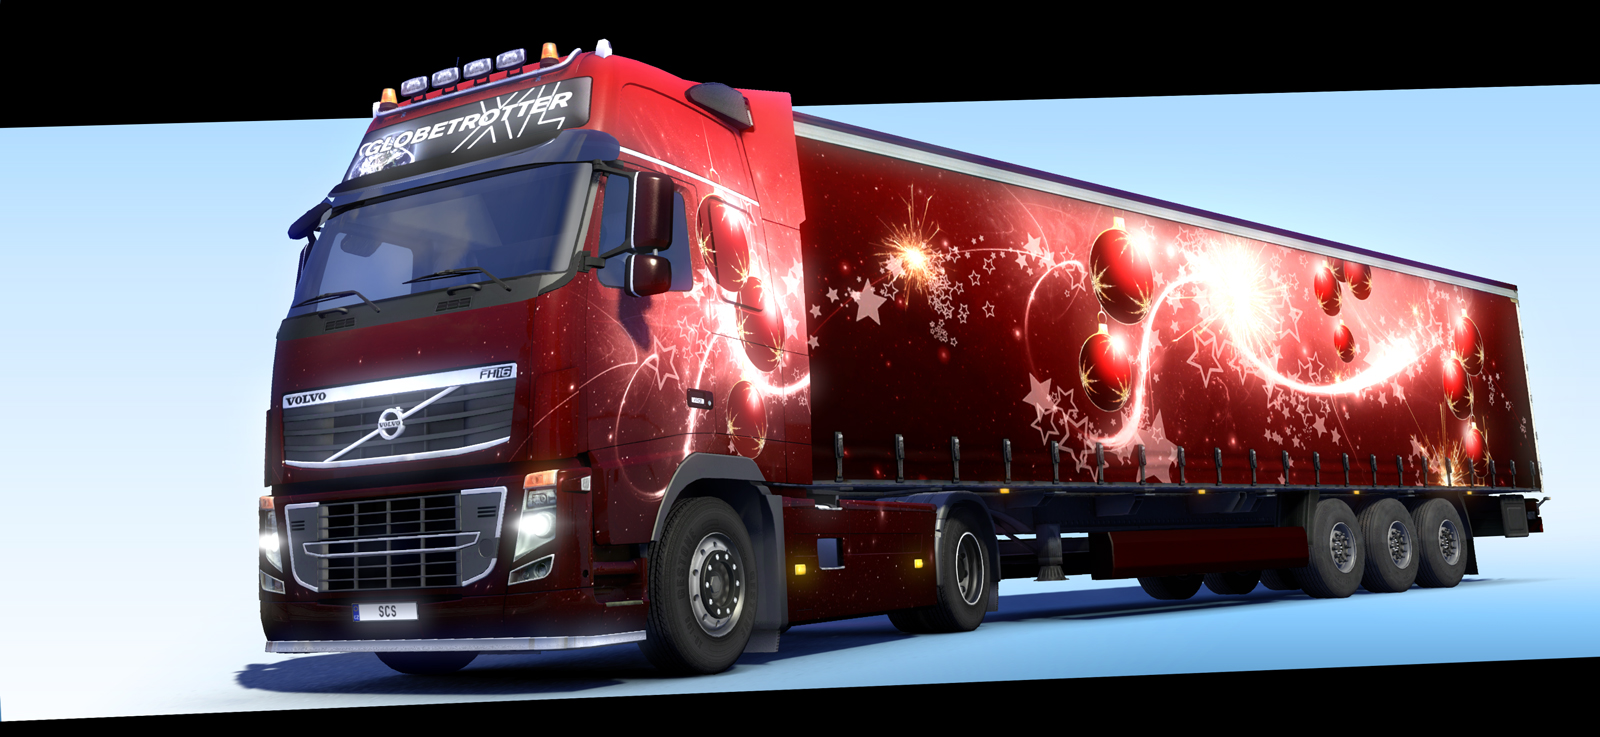 ets2_xmas_cargo_gifts_a_004.jpg